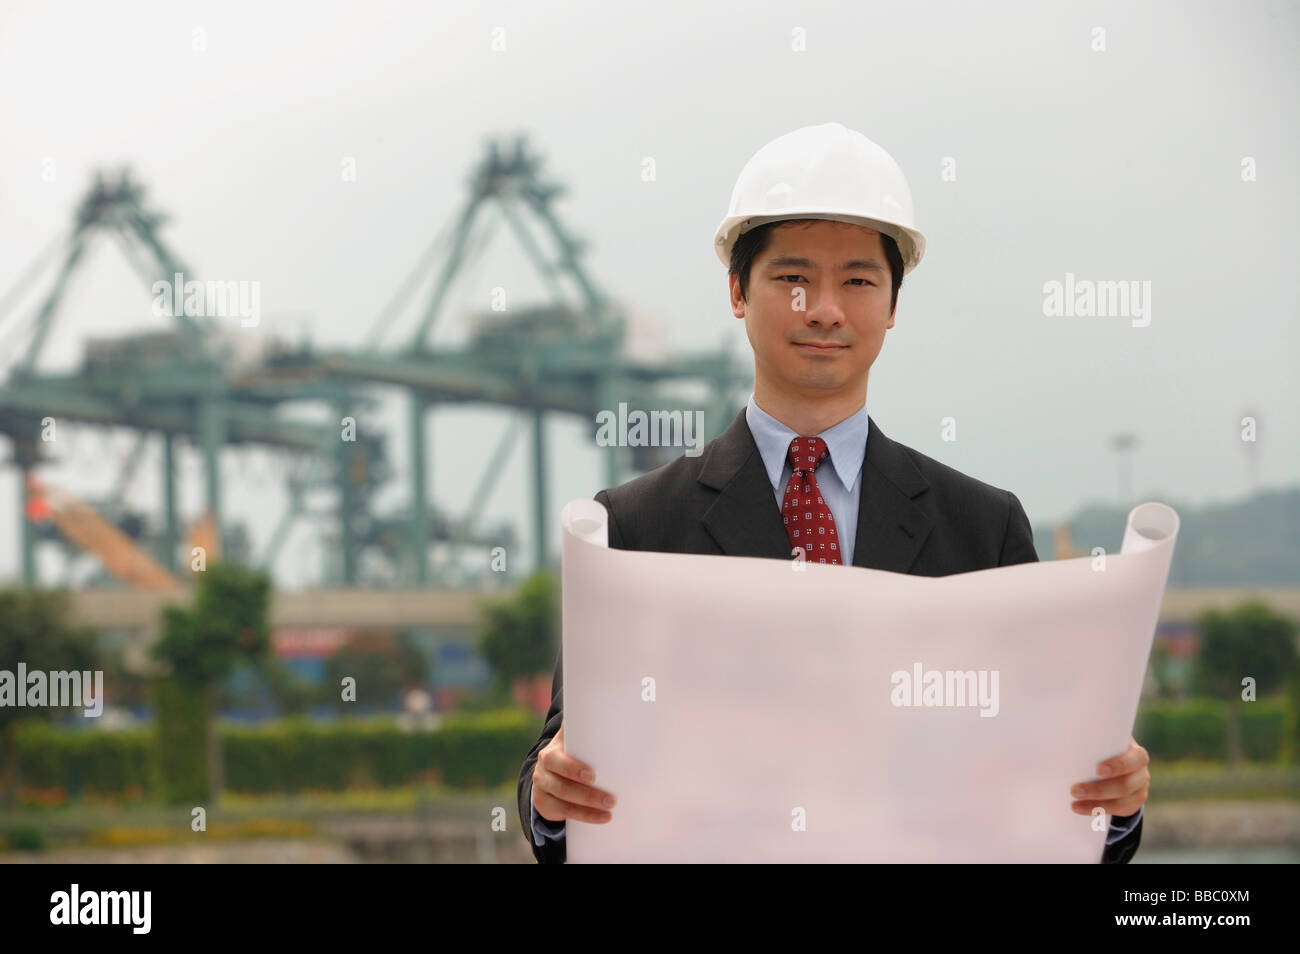 Engineer with plans and hard helmet looking at camera - Stock Image